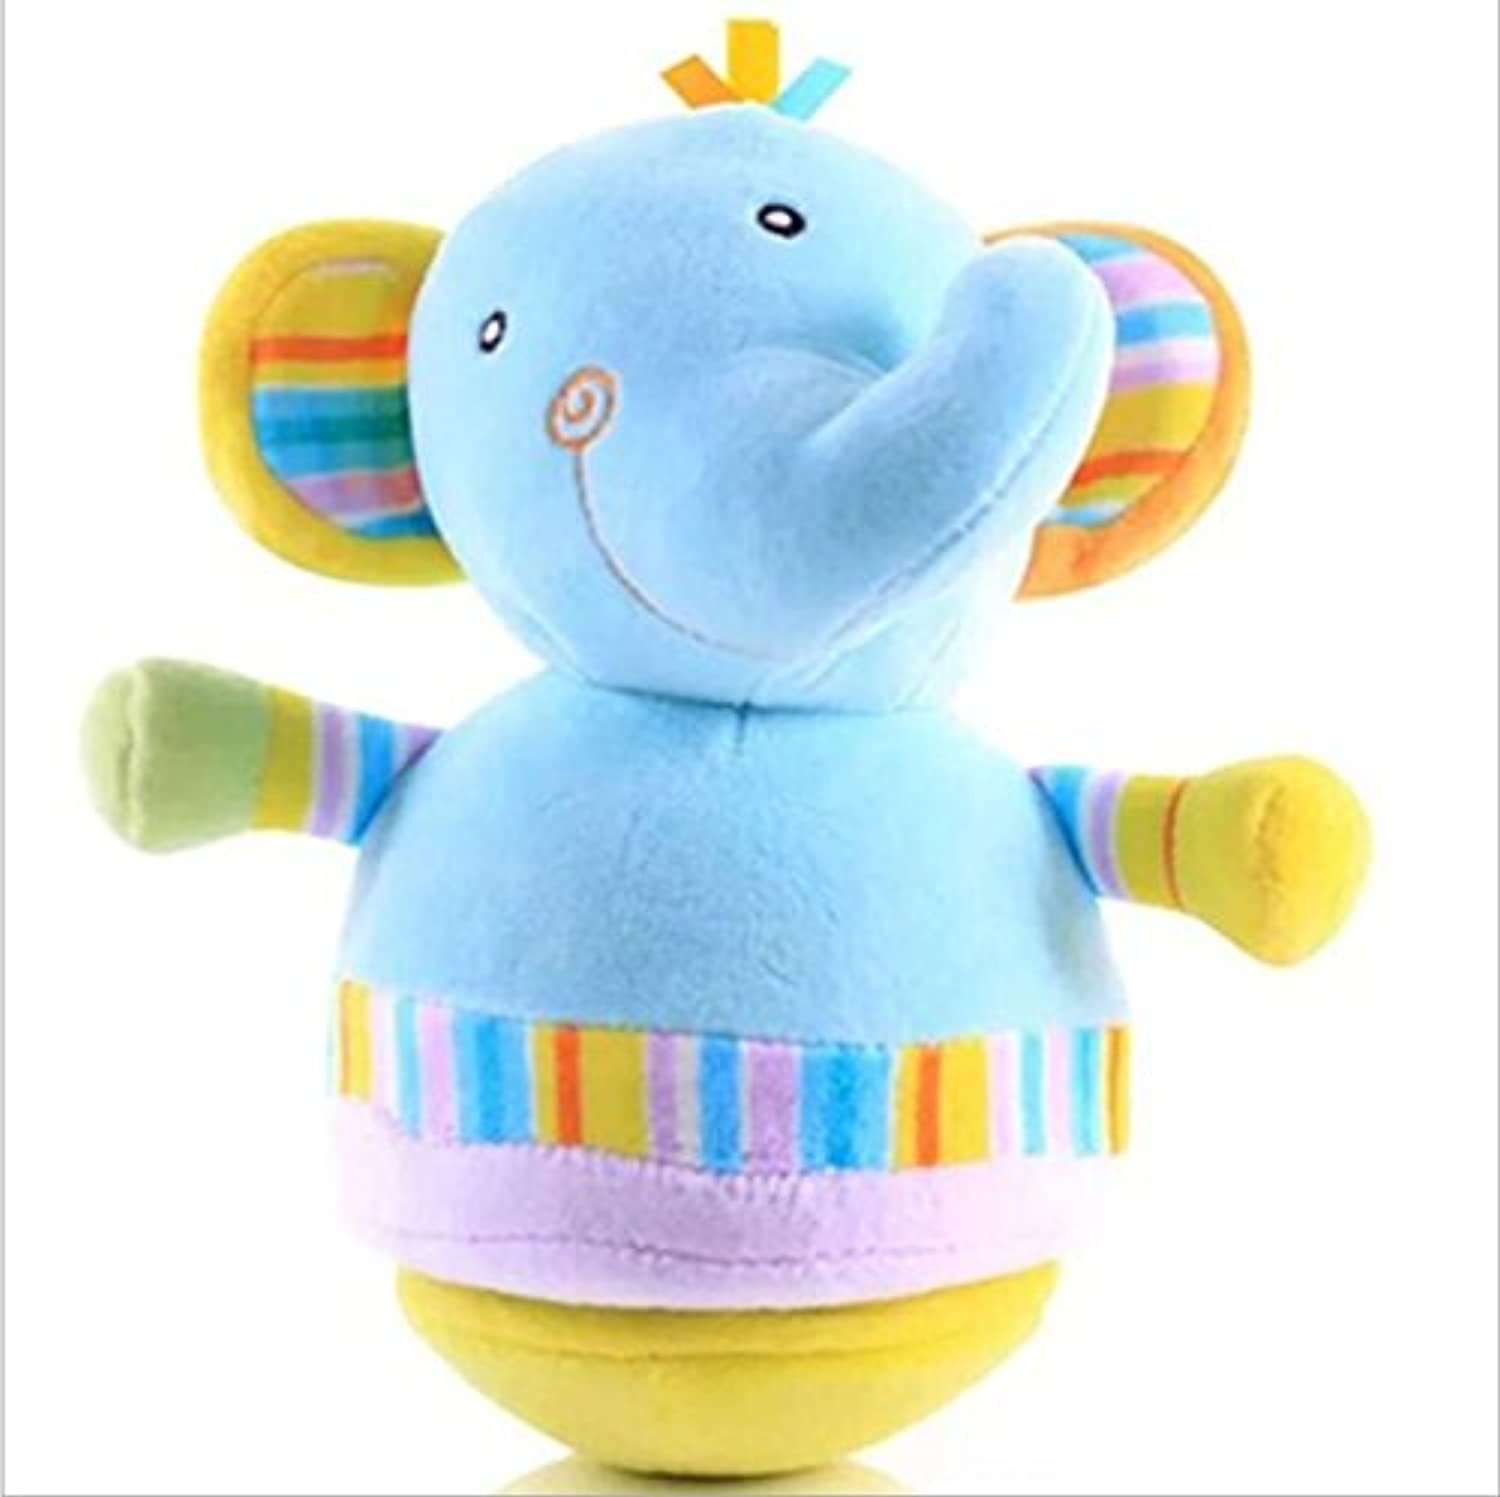 wanrane Cute Kids Roly - Poly Toy Adorable象カラフルなソフト手Rattlesクロール子供用ベルボールおもちゃギフト(象)